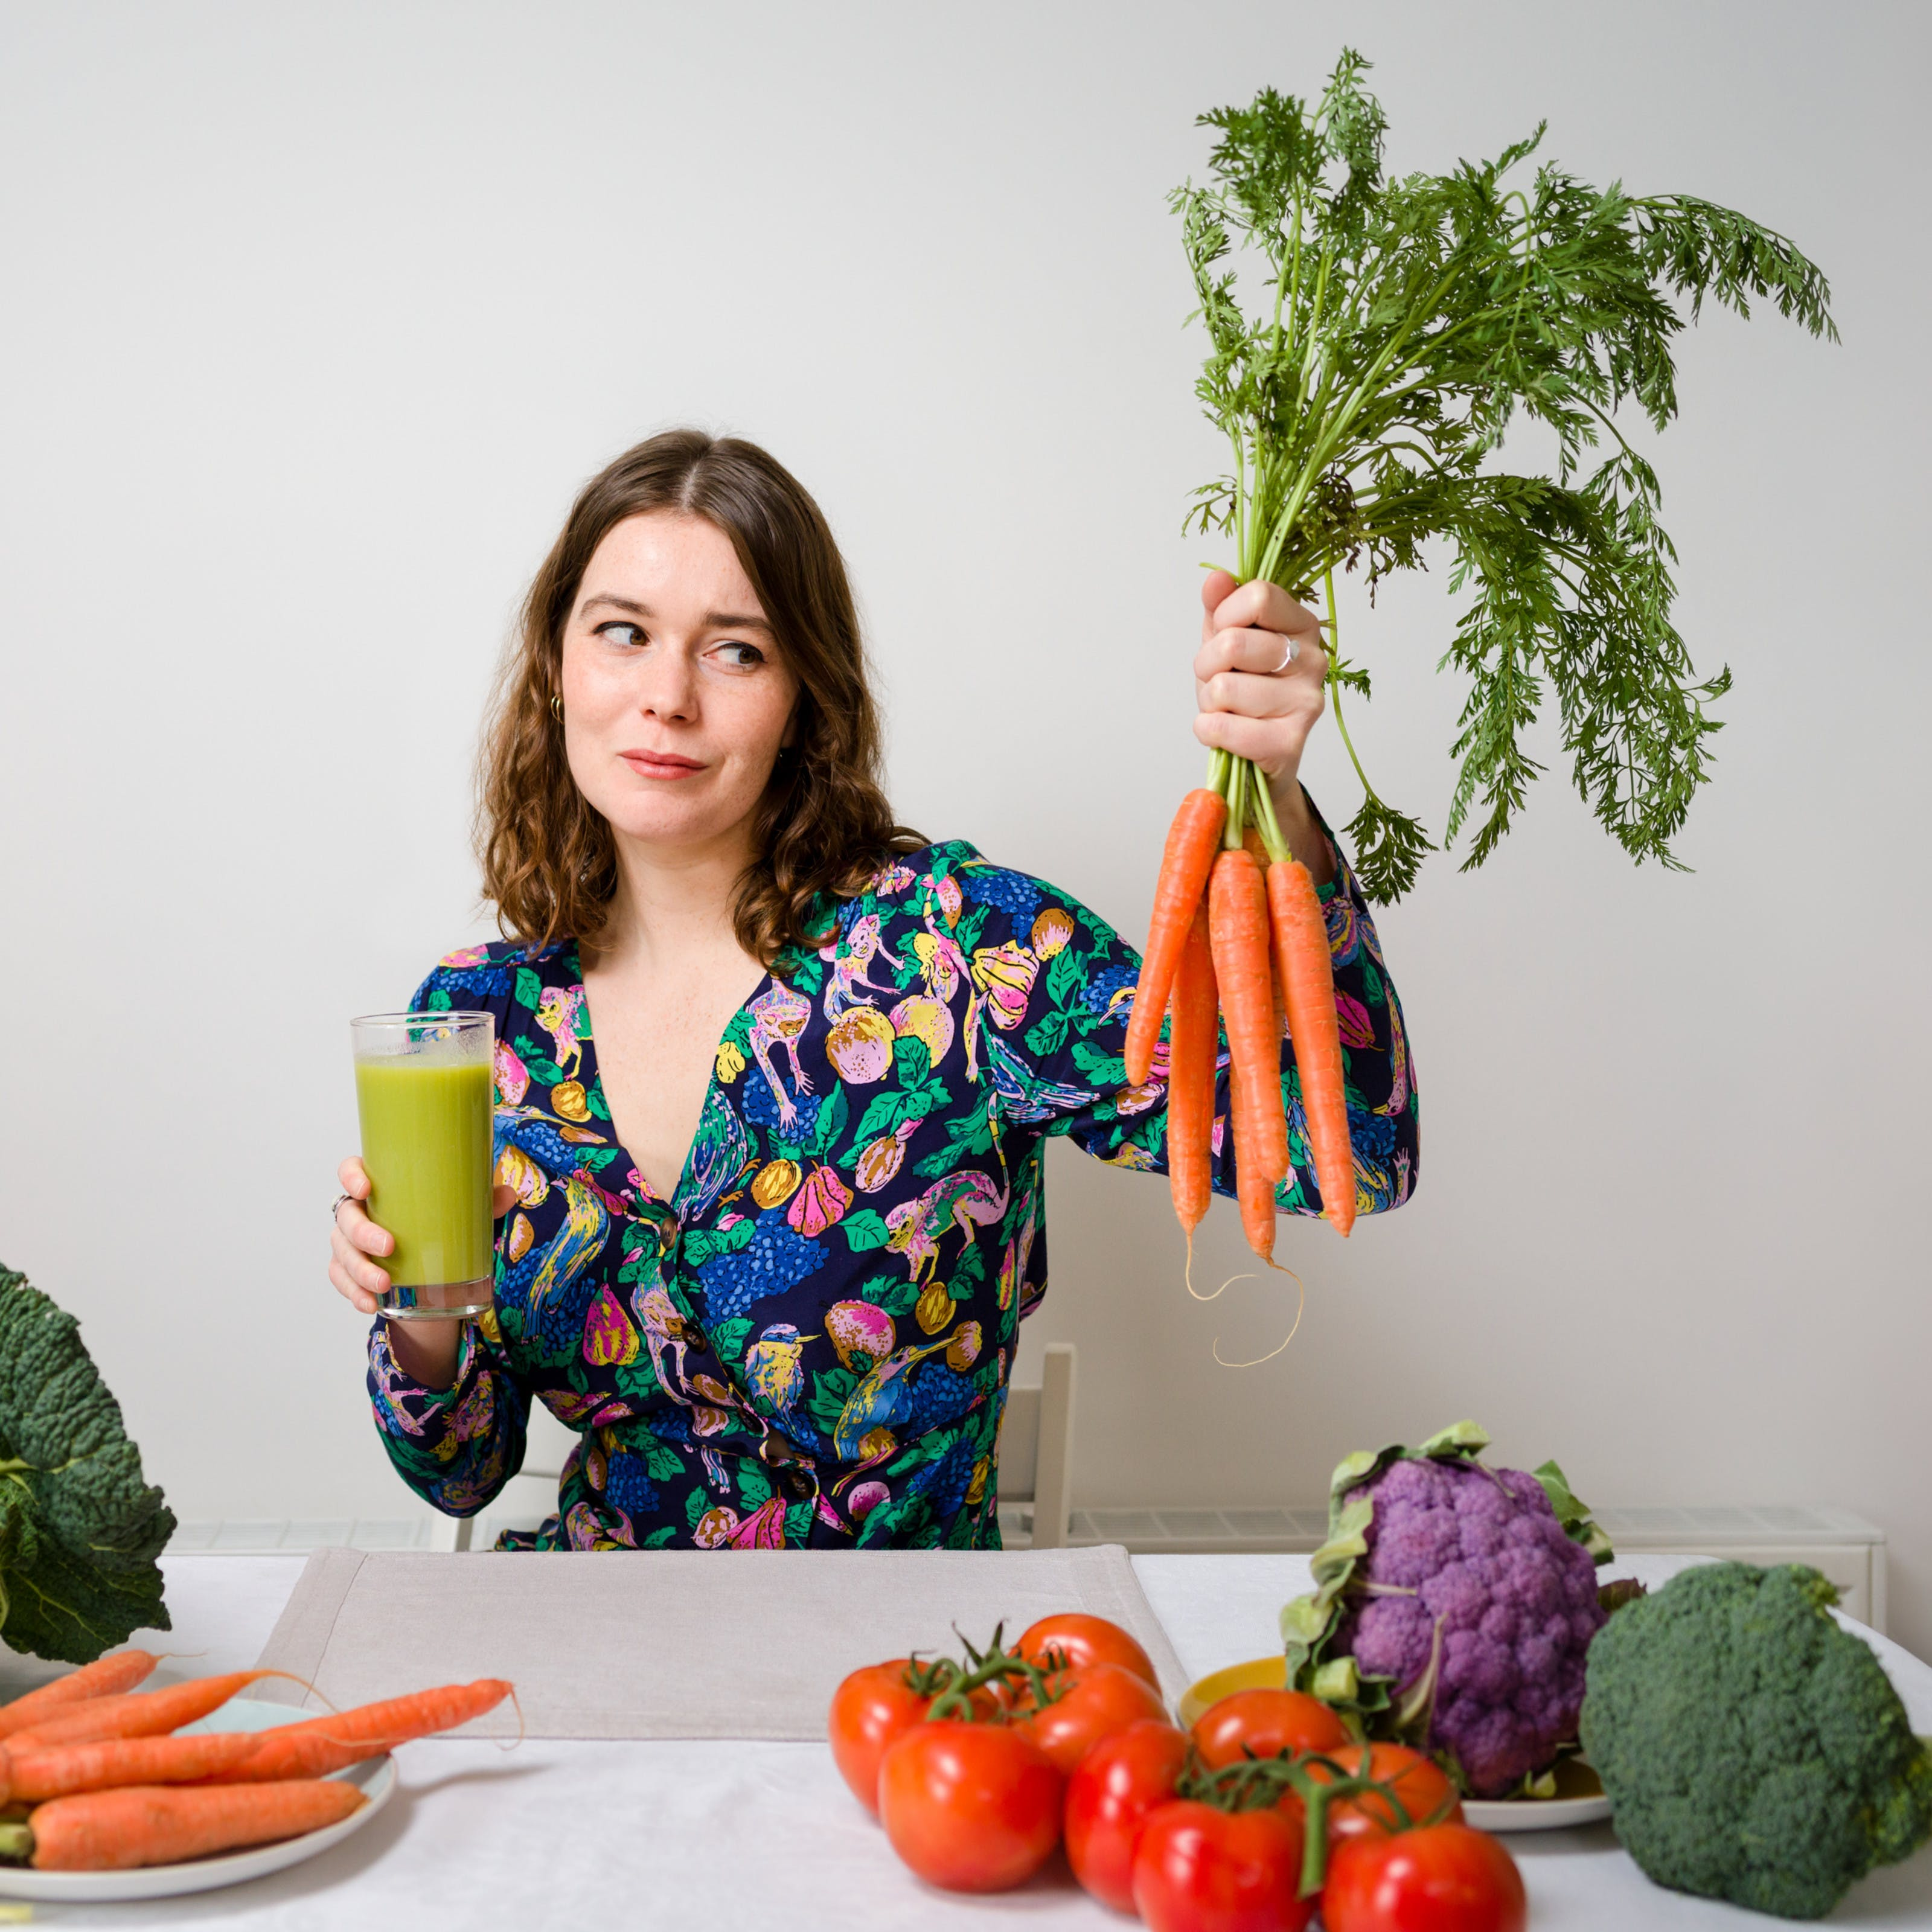 Photograph of writer Gwen Smith sat behind a table which is covered in vegetables, holding carrots in one hand and a green health drink in the other. She is looking sceptically at the vegetables.